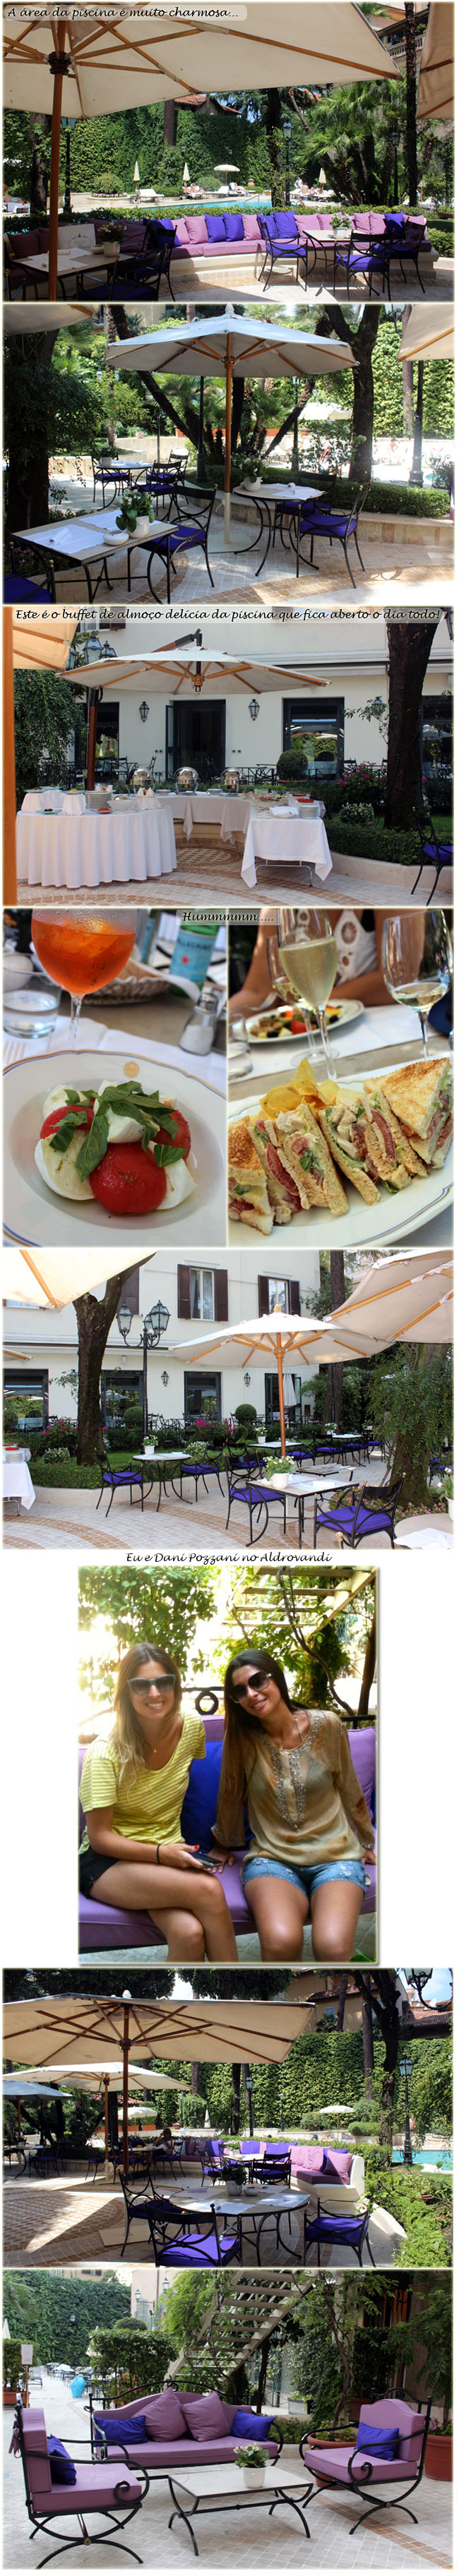 Hotel Aldrovandi, hoteis roma, the leading hotels of the word, hotel villa borghesse, dices de roma, roma, italia, dices da italia, hotel aldrovandi villa borghese